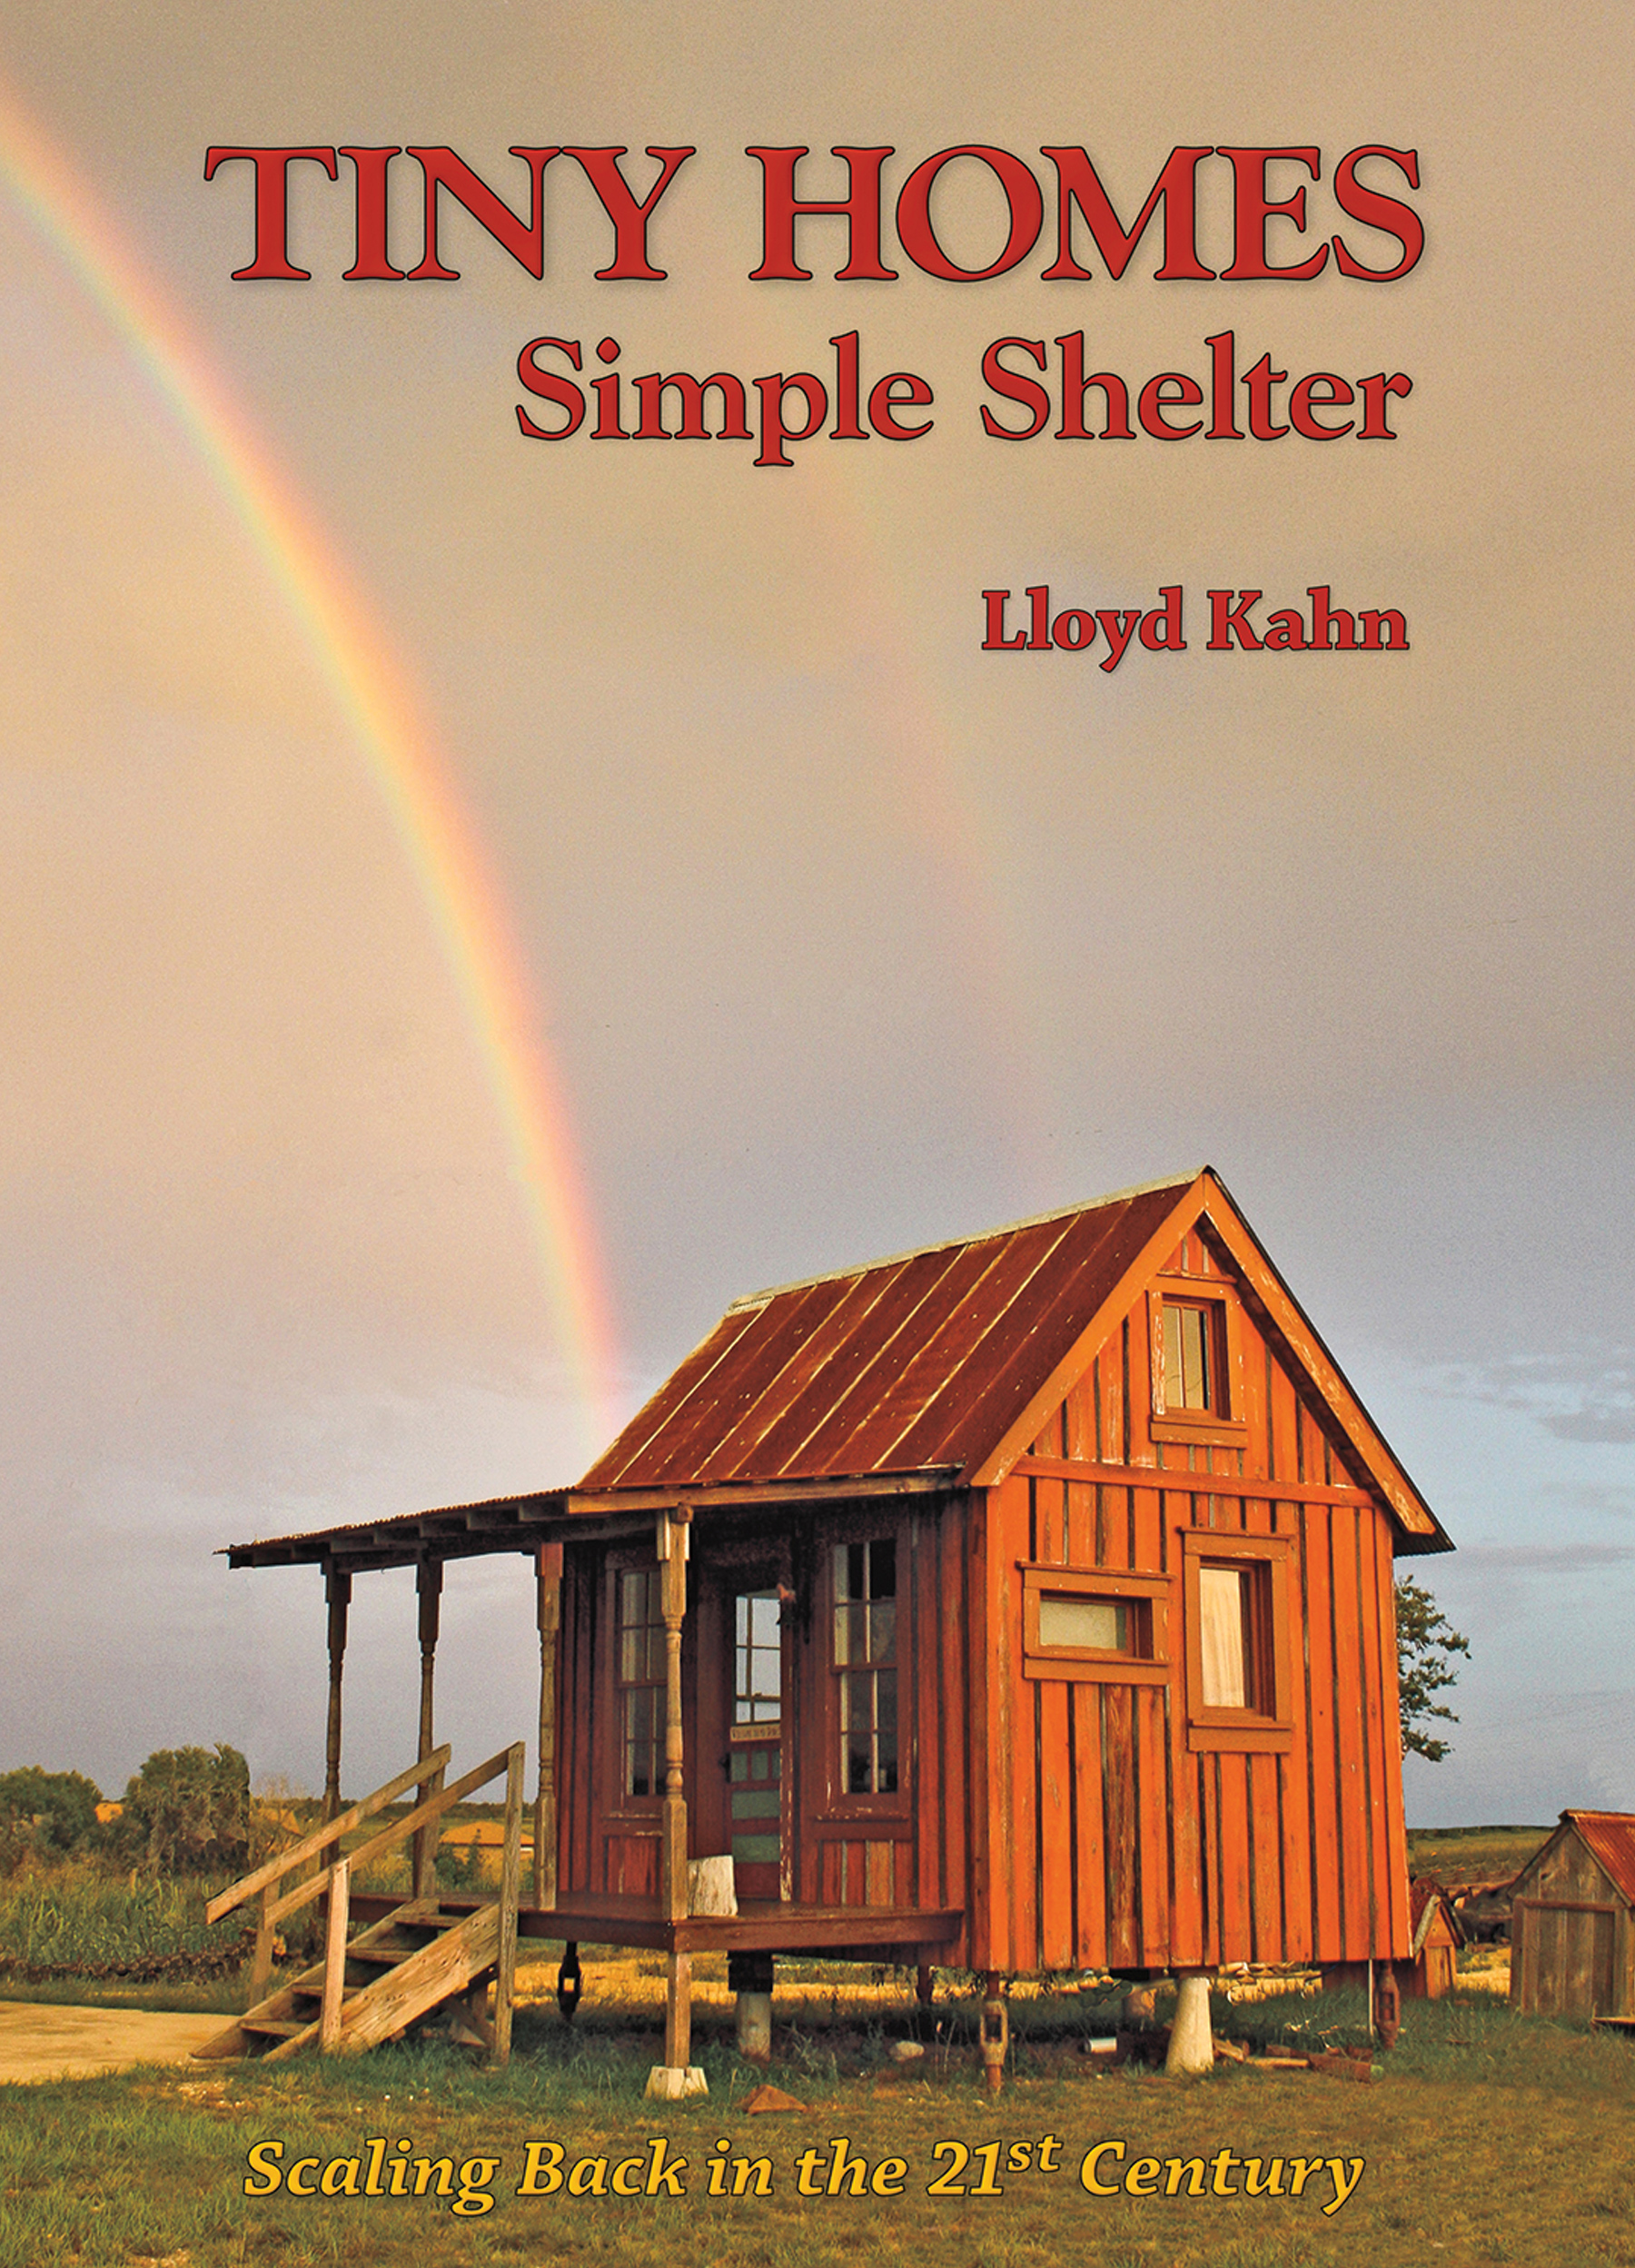 Our best-selling book about small houses, campers, road rigs, houseboats, cob, straw bale, round timber, and much more.